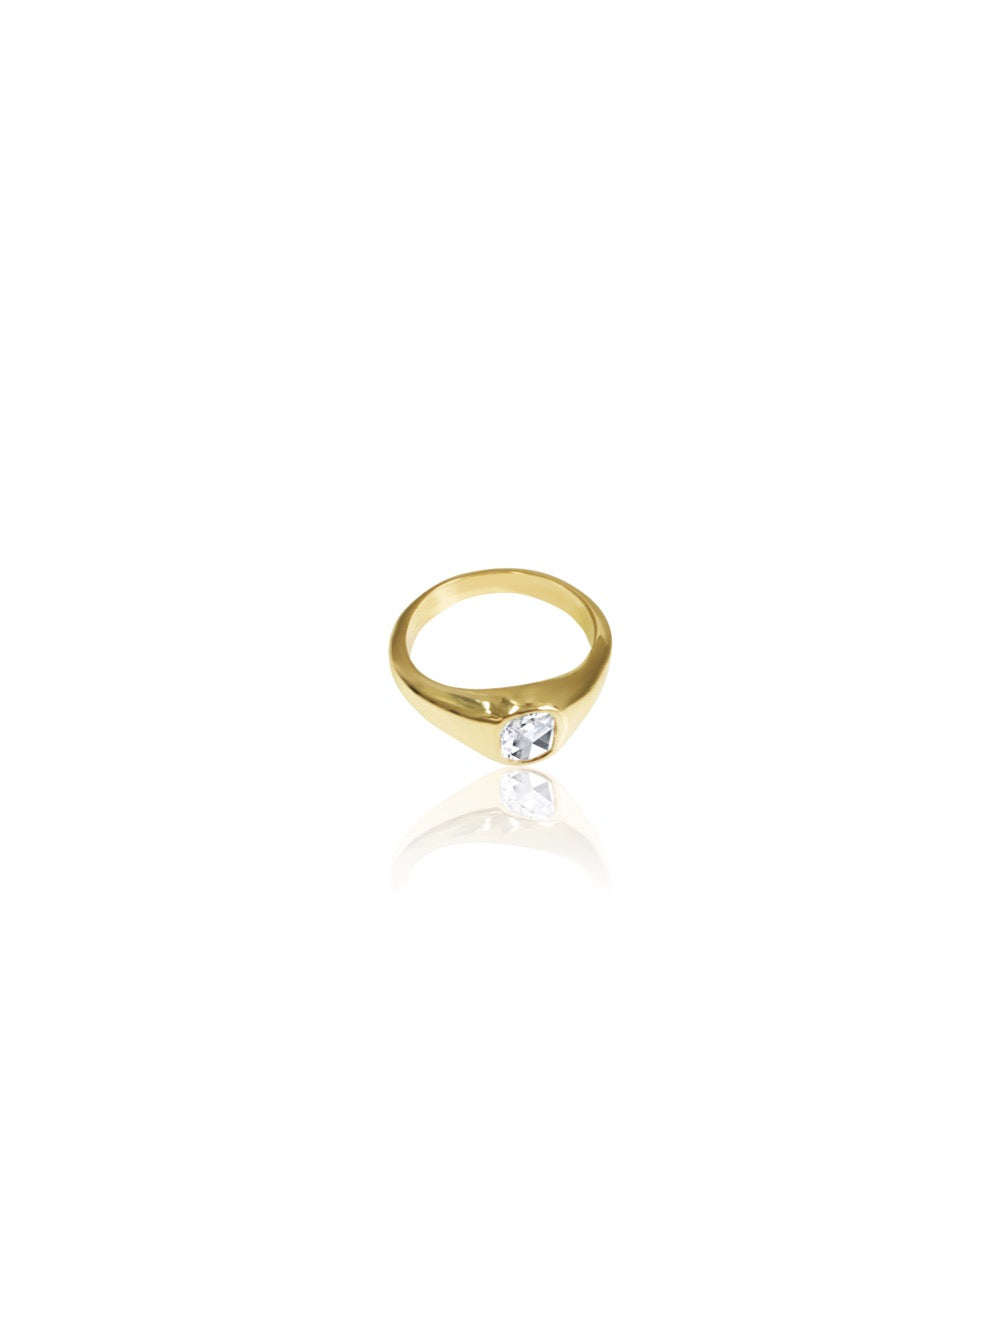 14K Gold Rose Cut Diamond Signet Ring